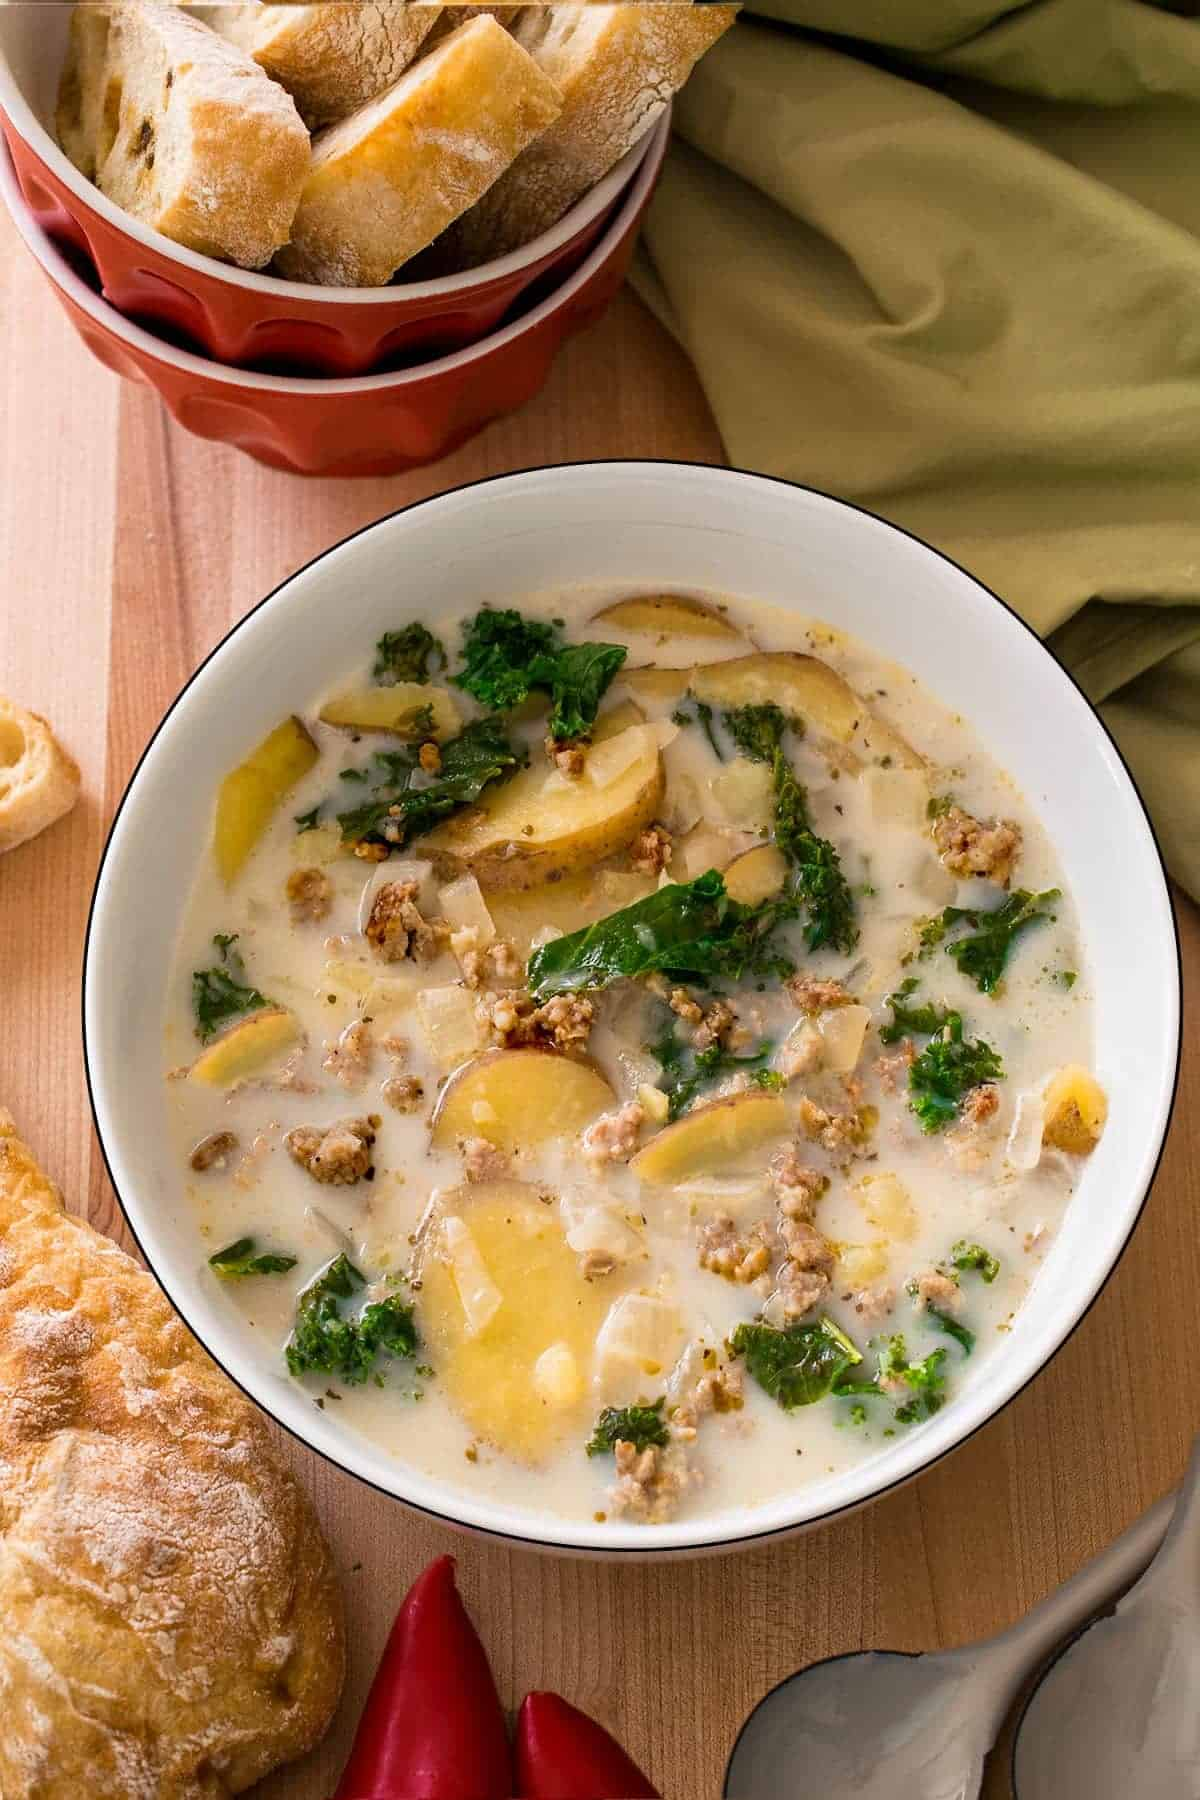 Italian sausage kale soup in white bowl on cutting board with crusty bread on the side and red bowl of crusty bread slices behind.